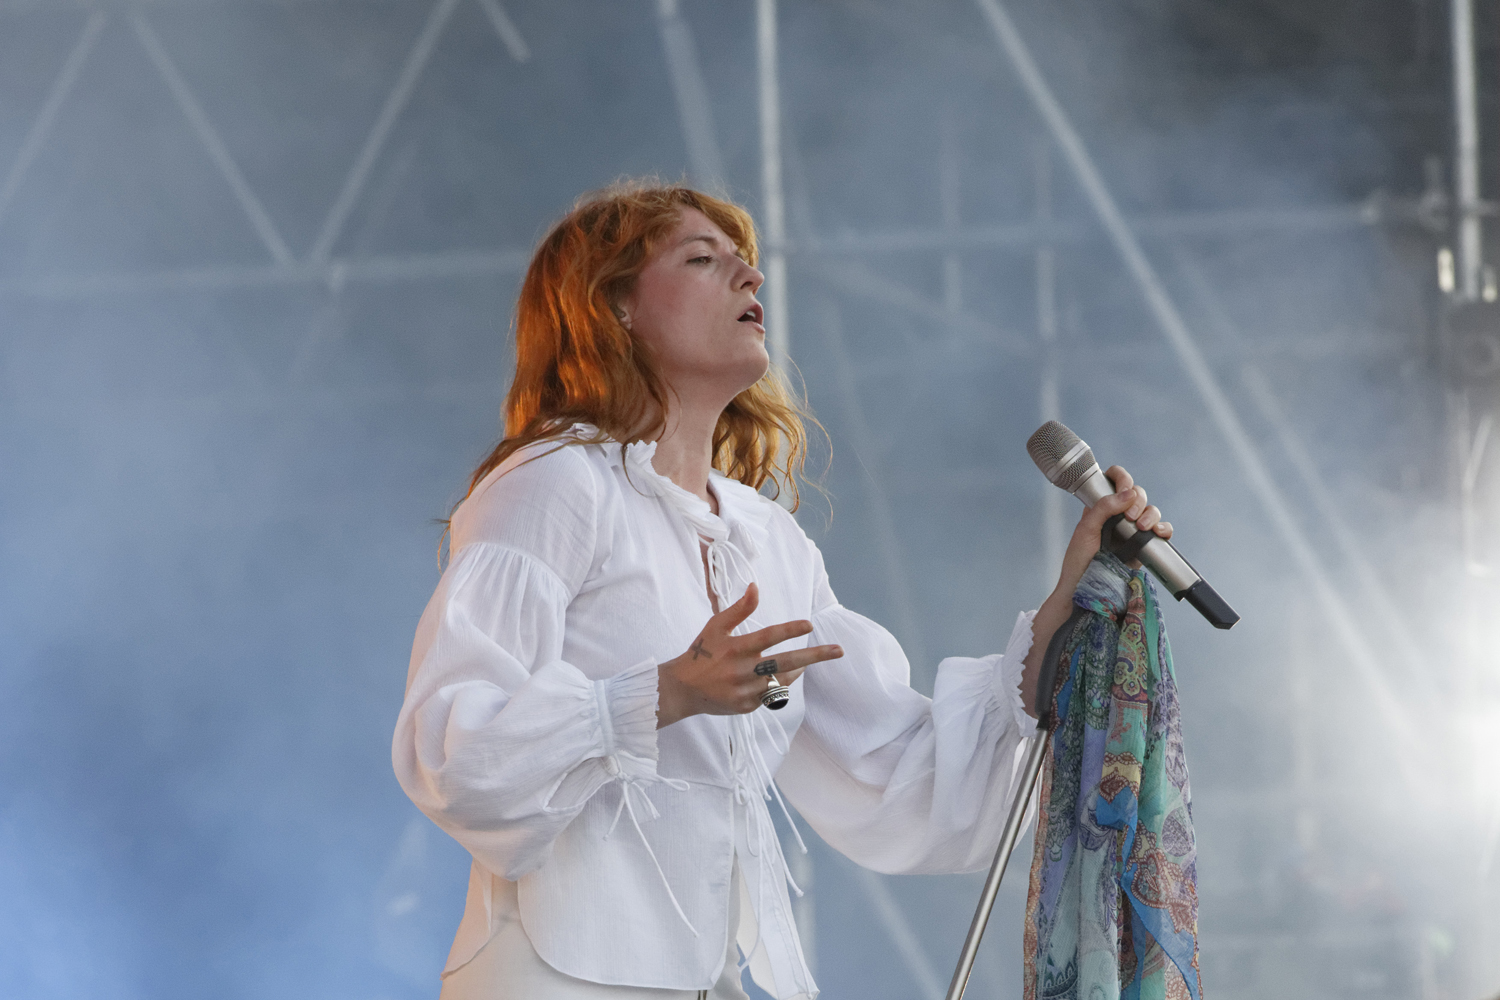 Florence Welch performs with the Machine at the Bonnaroo Music and Arts Festival in Manchester, Tenn. on Sunday, June 14, 2015. (MTSU Seigenthaler News Service / Gregory French)